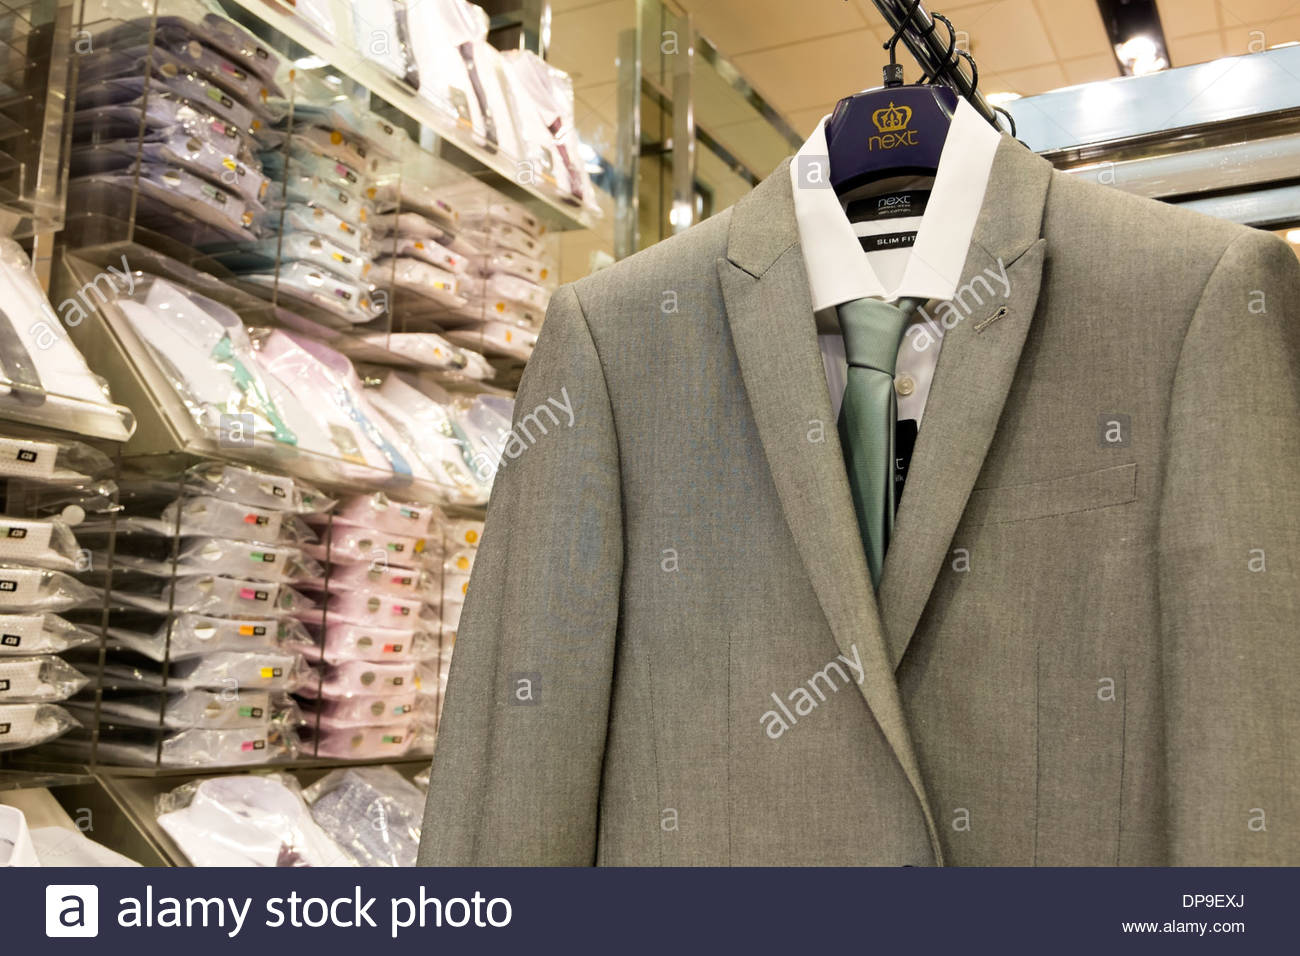 Suits for sale in Next store at Merry Hill, UK. - Stock Image